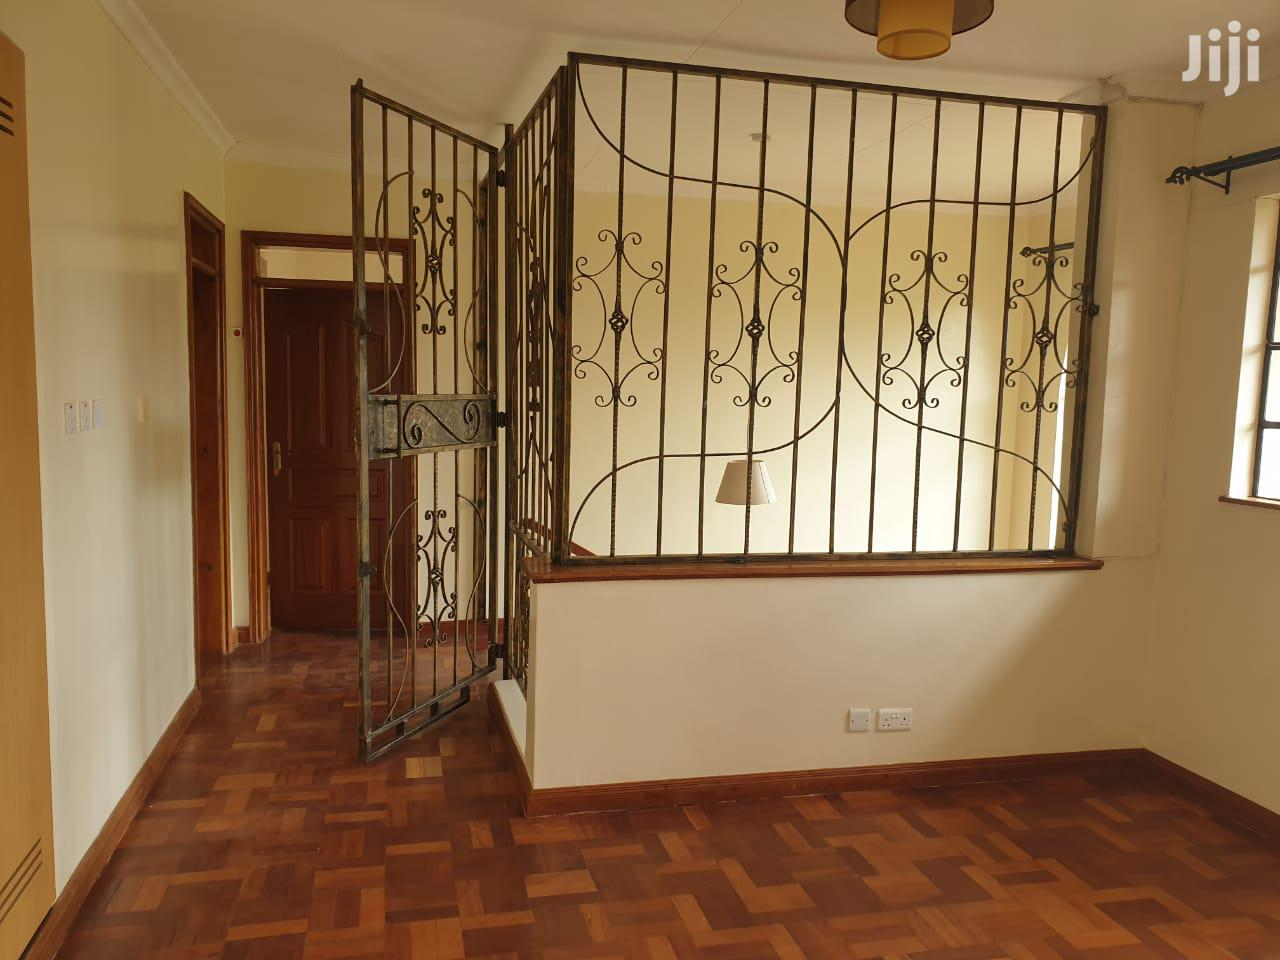 You Cant Miss This One! Runda Mumwe Four Bedroom Townhouse. | Houses & Apartments For Rent for sale in Kitisuru, Nairobi, Kenya